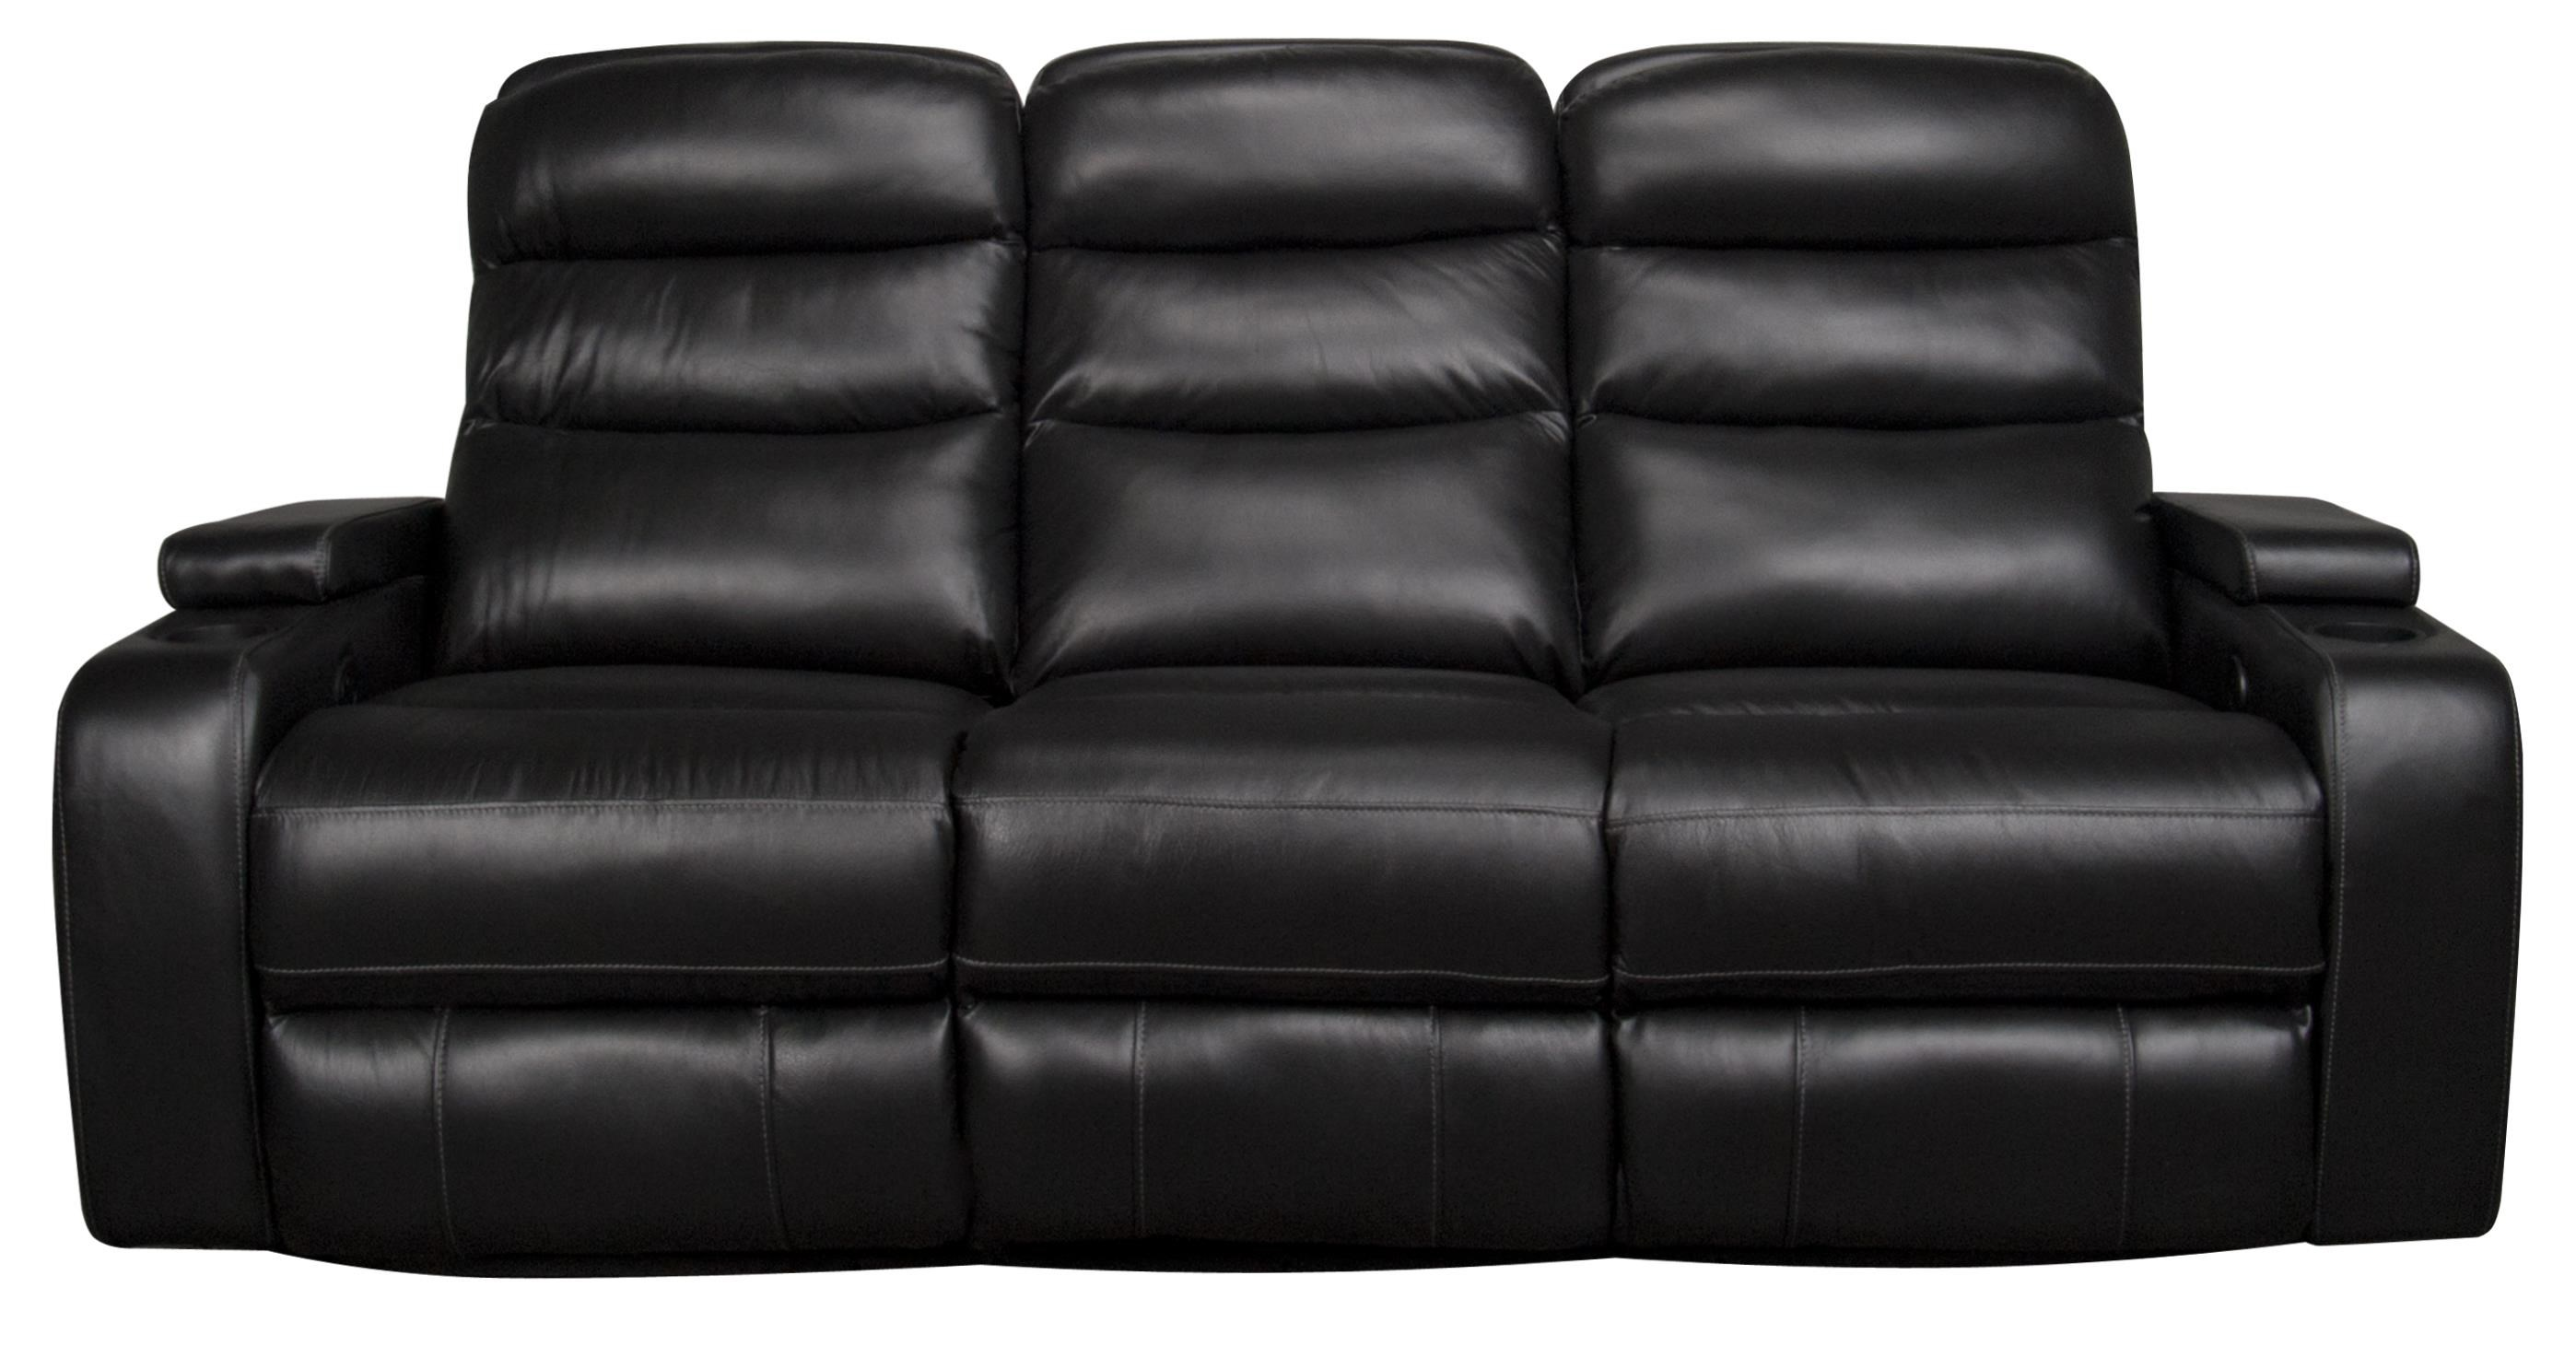 Robert Dual Power Leather-Match* Reclining Sofa - Morris Home - Reclining Sofas  sc 1 st  Morris Furniture : power leather recliner sofa - islam-shia.org